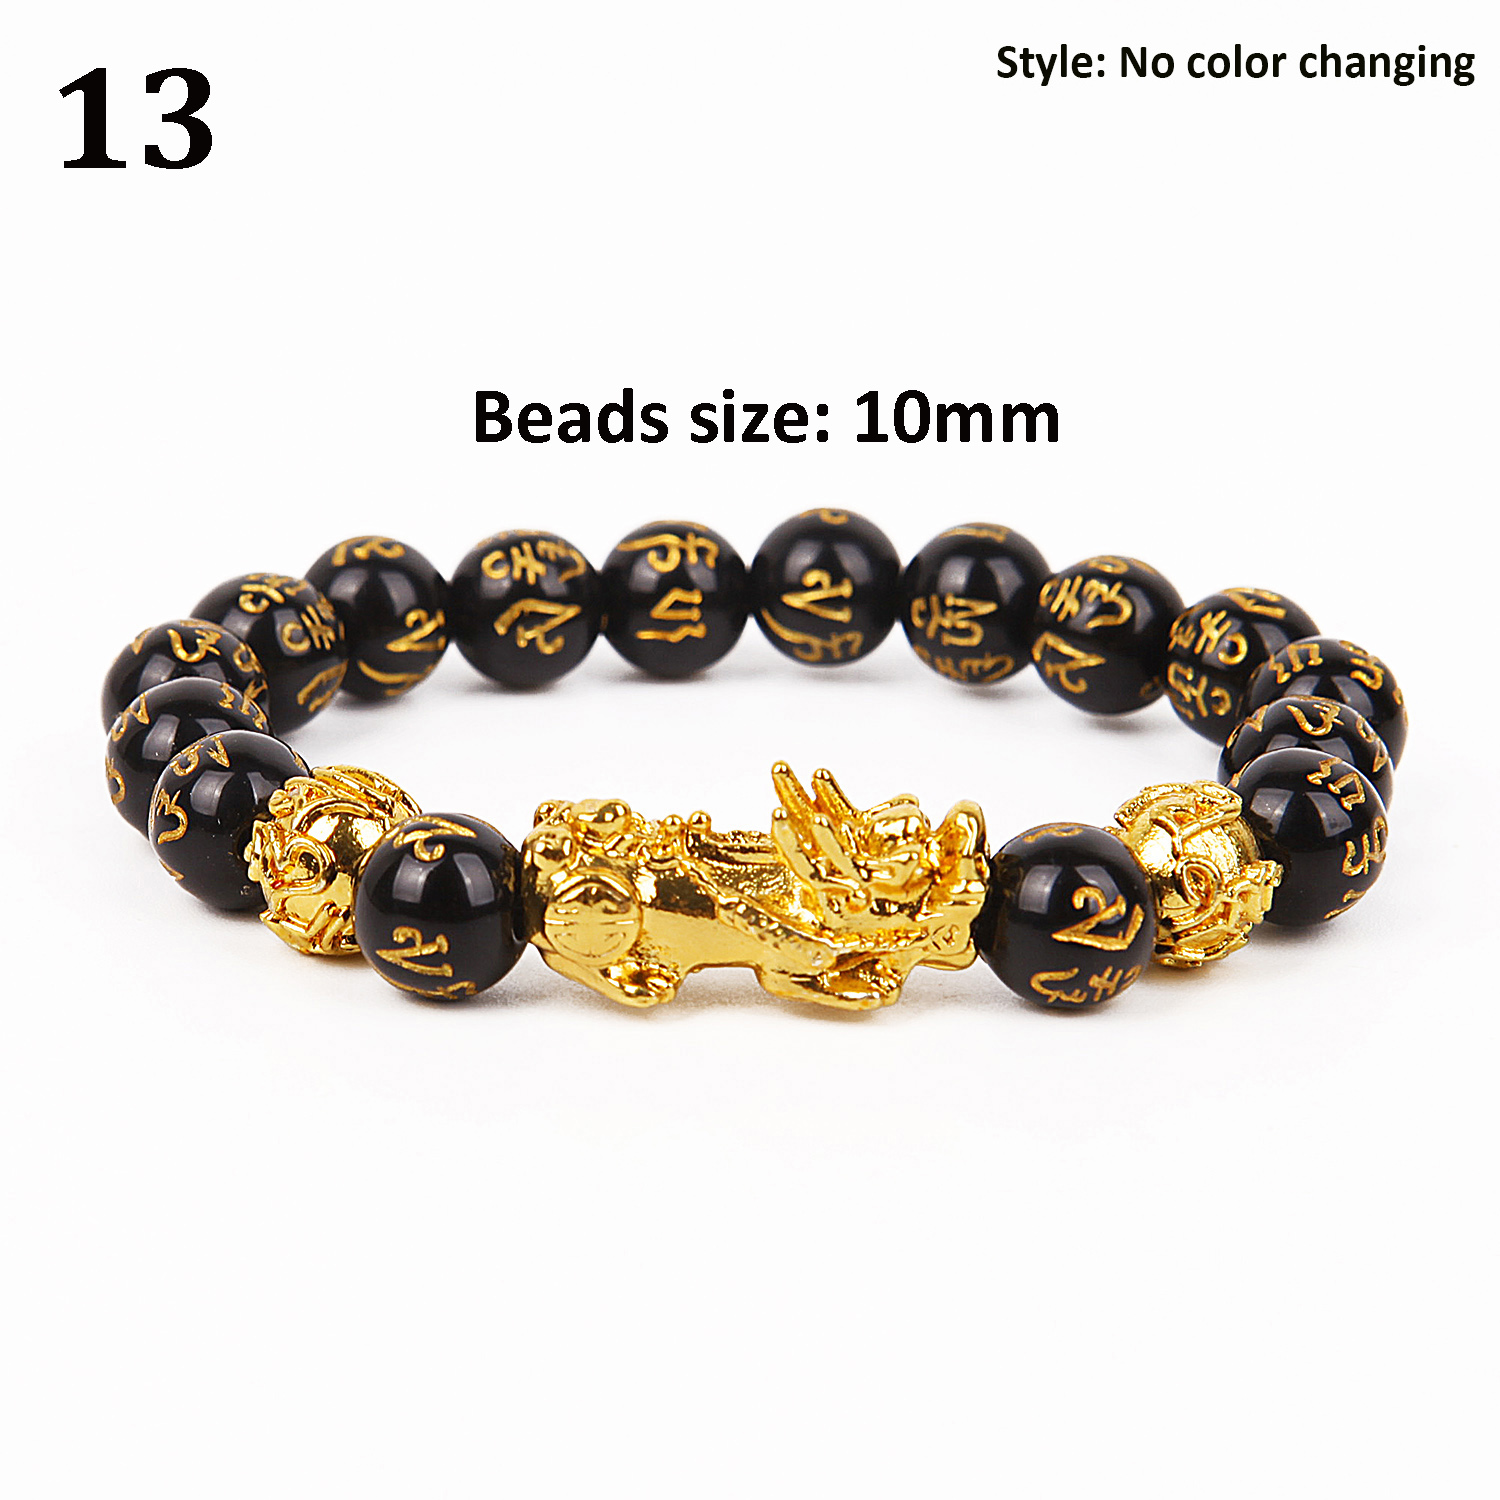 13 (Beads size 10mm)